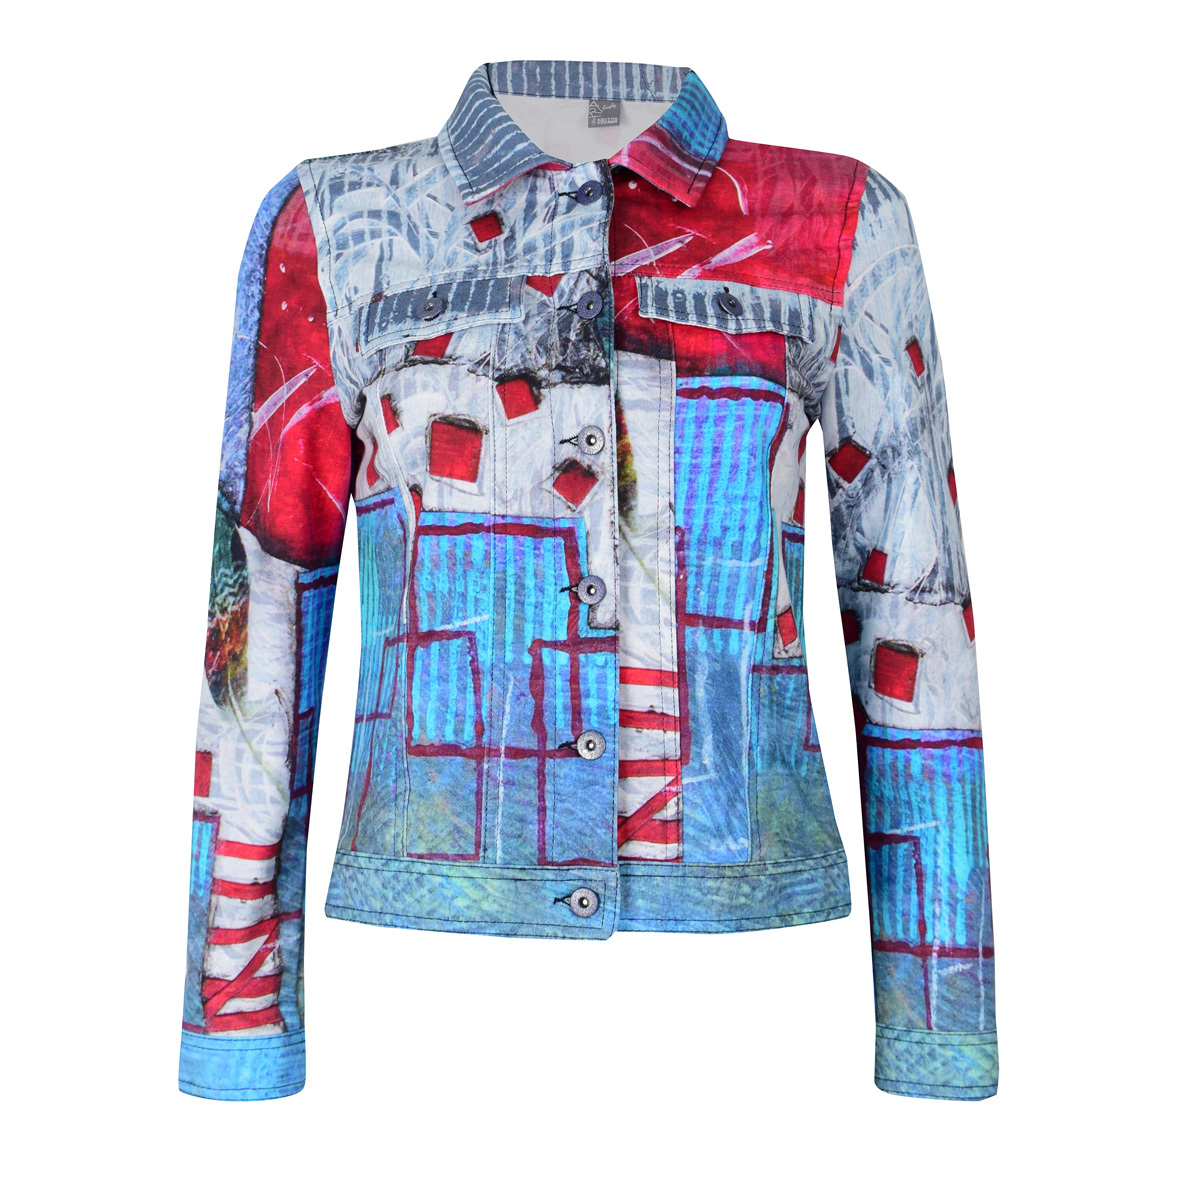 Simply Art Dolcezza: Only Love Spiritually Square Soft Denim Abstract Art Jacket Dolcezza_Simplyart_59665